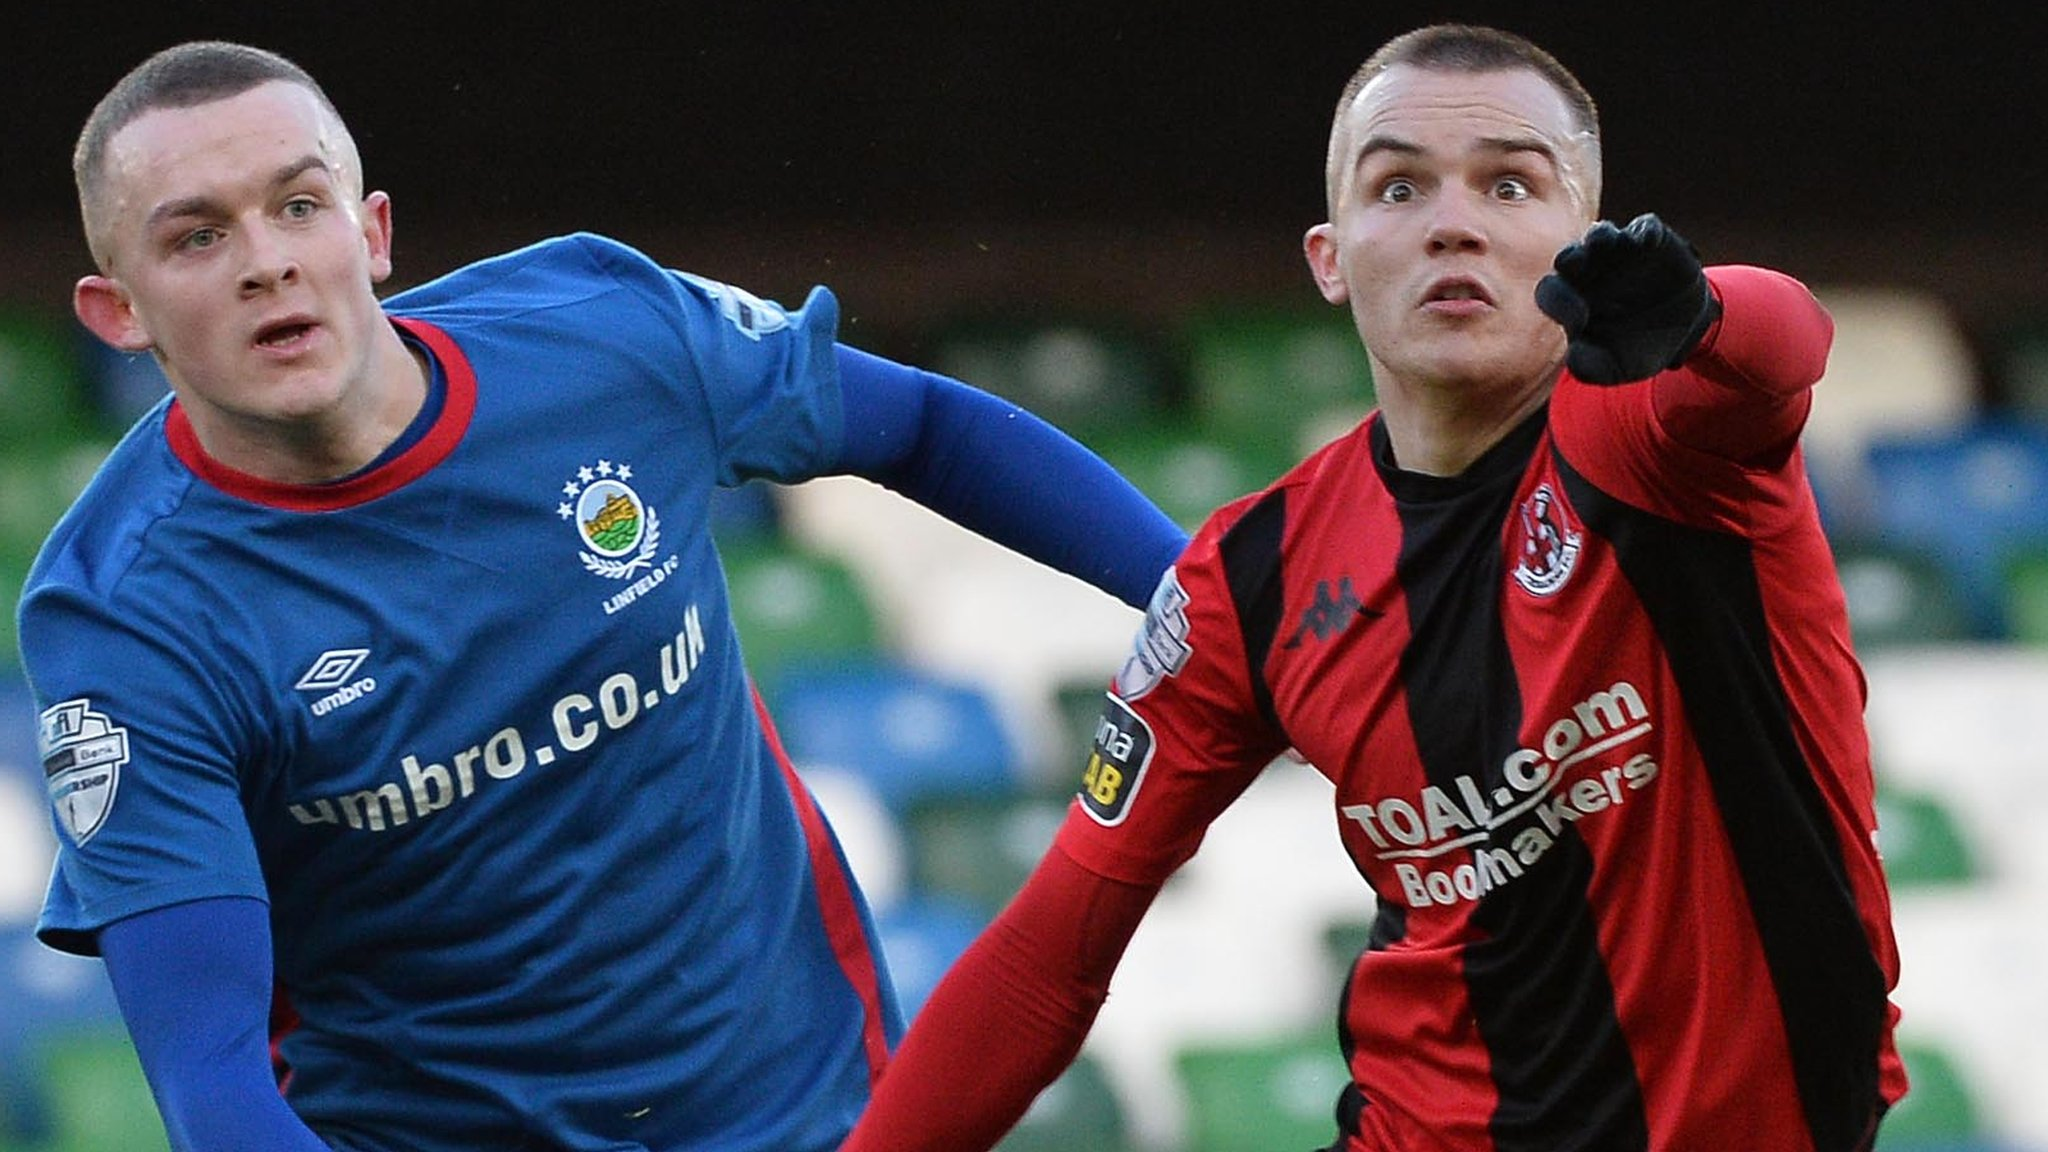 Co Antrim Shield final: Linfield and Crusaders 'agree to toss coin' on venue